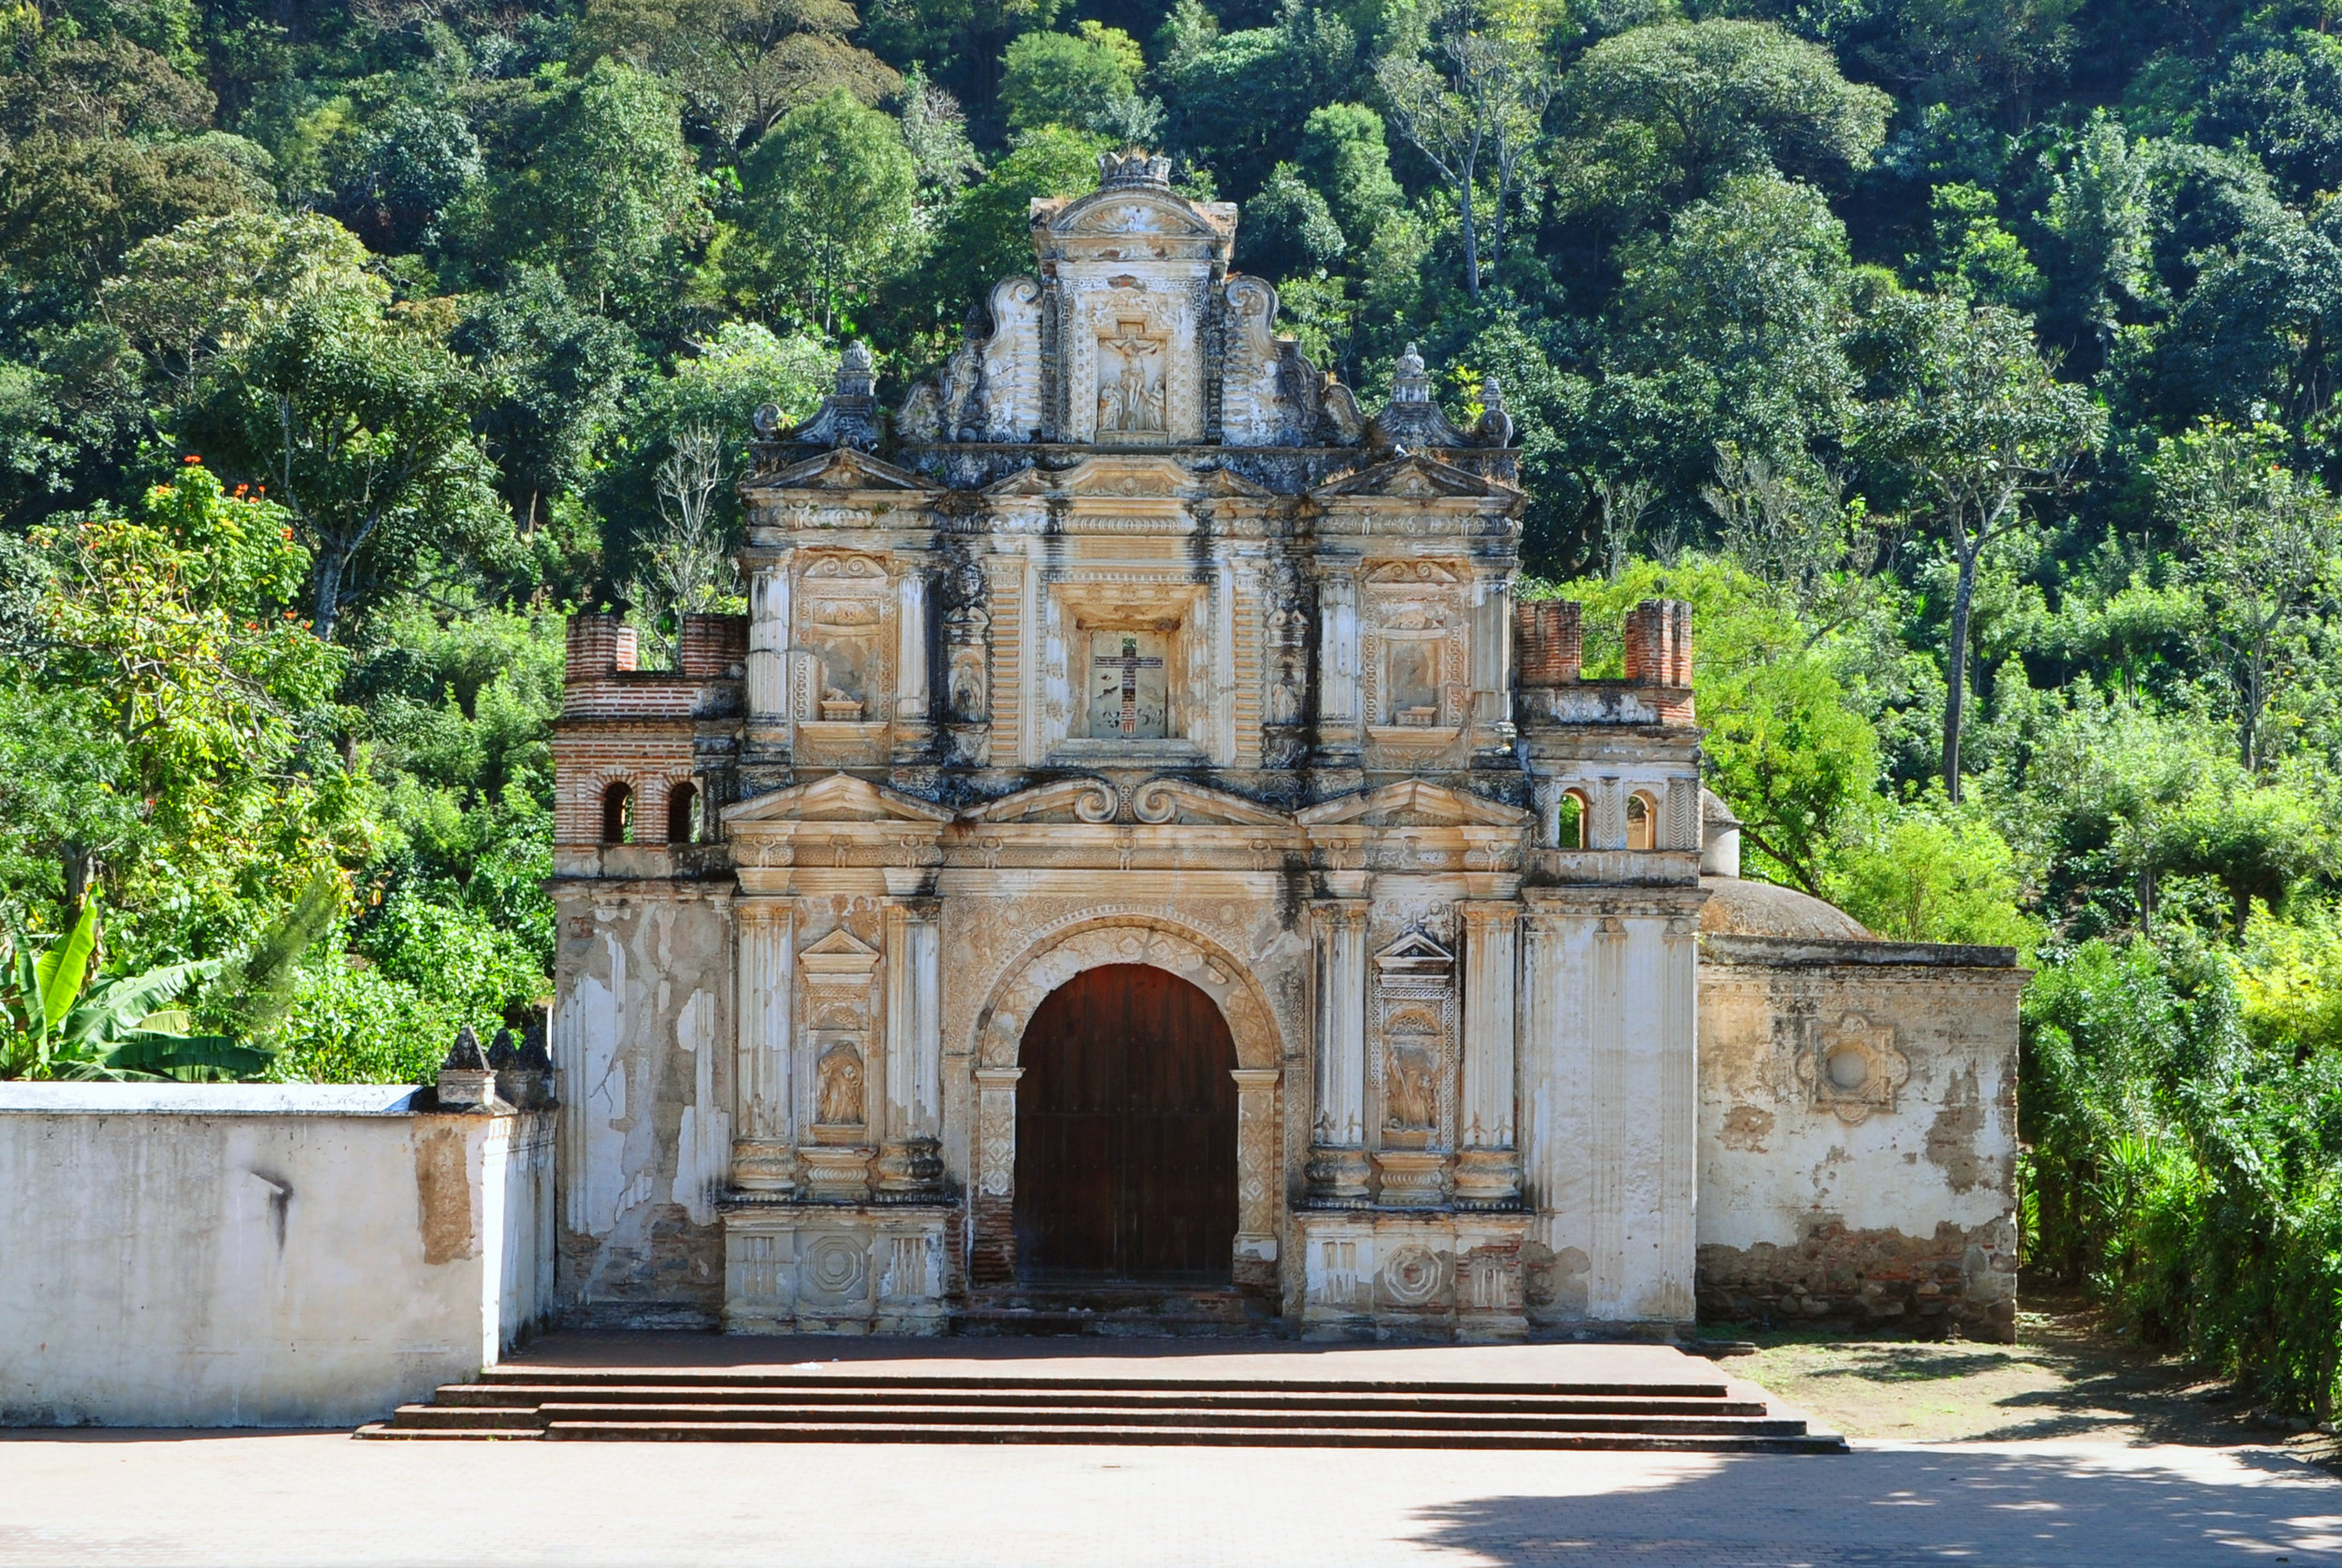 Beautiful Antigua, the former colonial capital of Guatemala, has many Cathedrals and historic building.